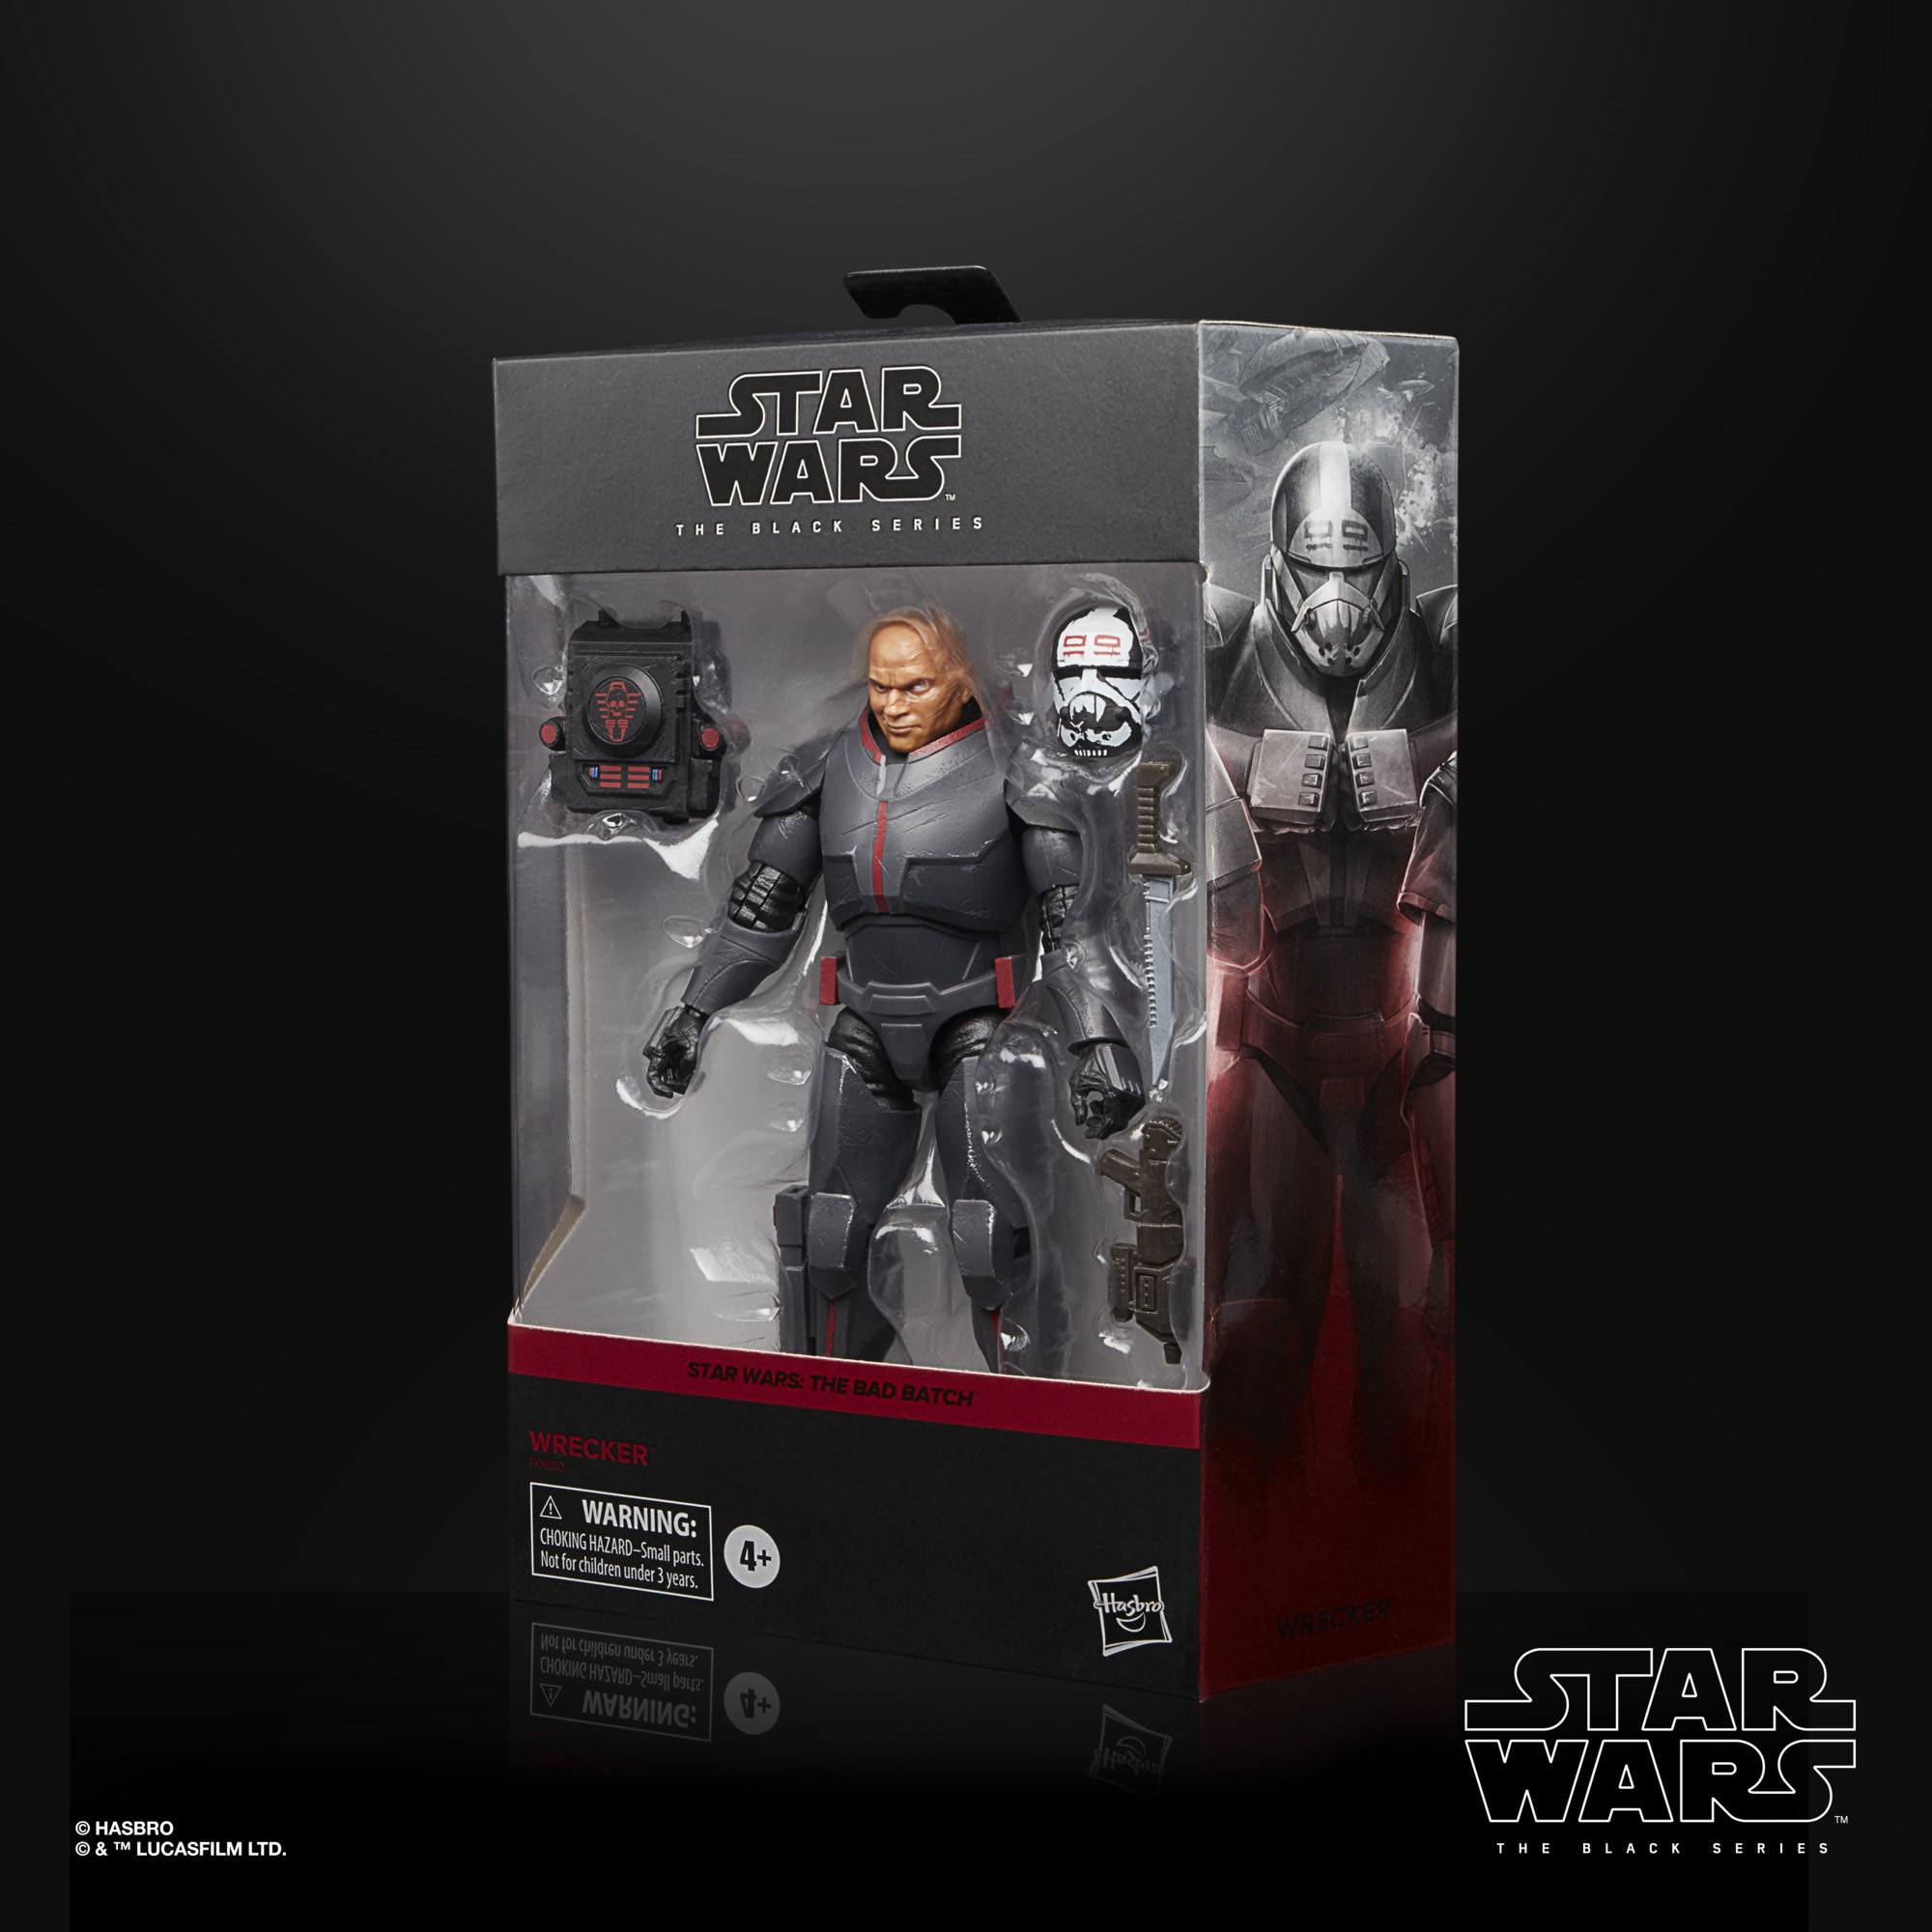 Star Wars The Black Series Bad Batch Wrecker 15cm Actionfigur F06305L00 5010993873739